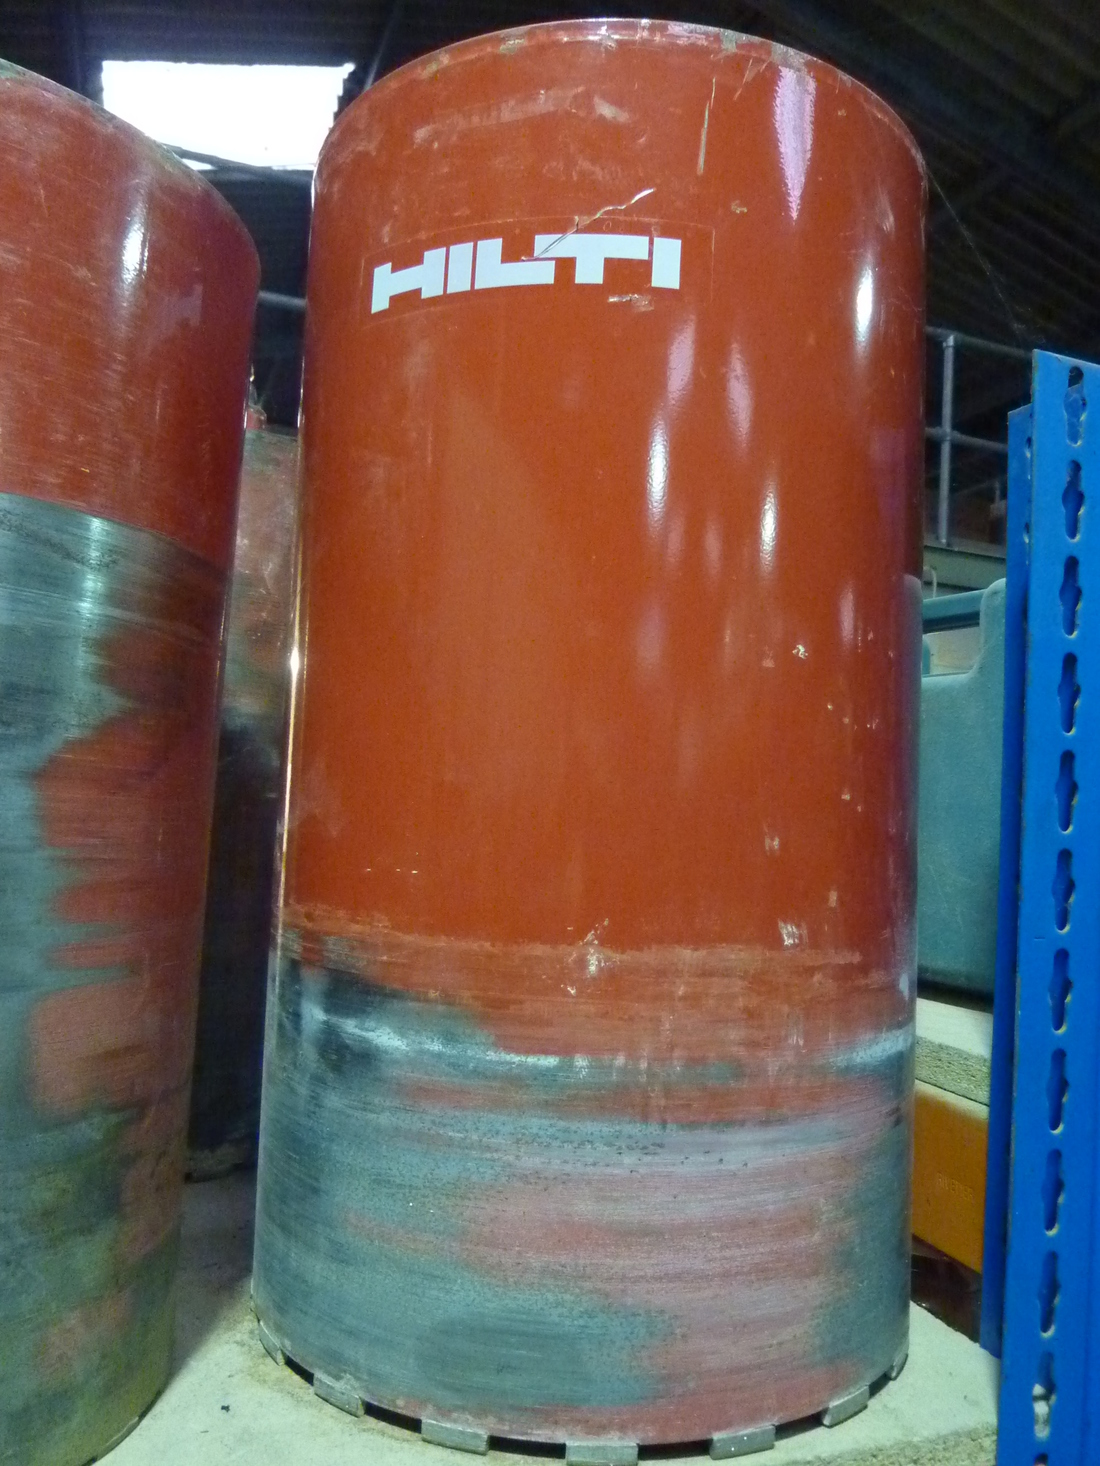 Hilti DD200 Wet Diamond Core 182mm